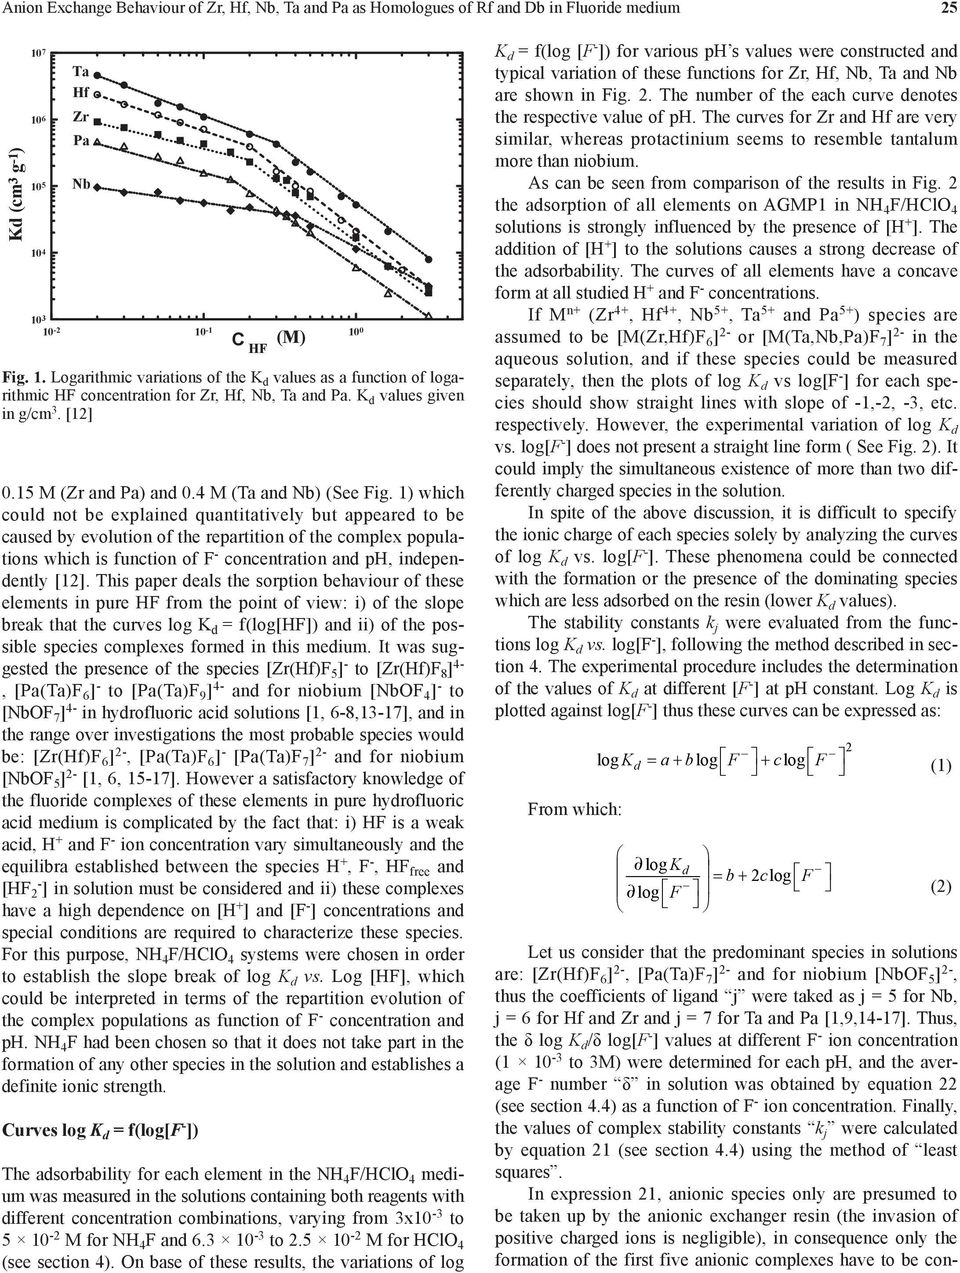 This paper deals the sorption behaviour of these elements in pure HF from the point of view: i) of the slope break that the curves log K d f(log[hf]) and ii) of the possible species complexes formed